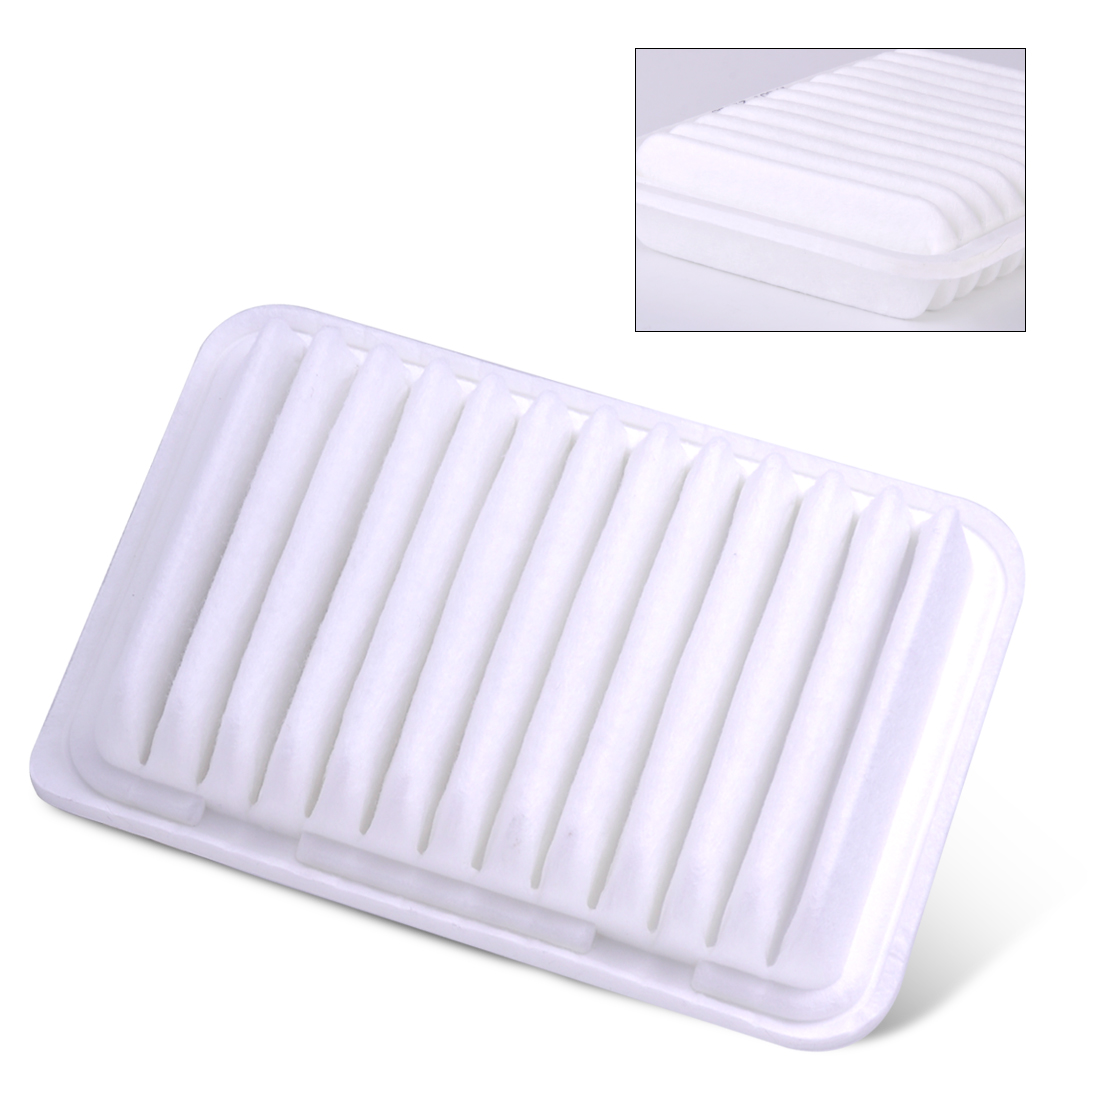 Citall 17801 21050 ca10190 white engine cabin air filter for toyota corolla matrix yaris pontiac